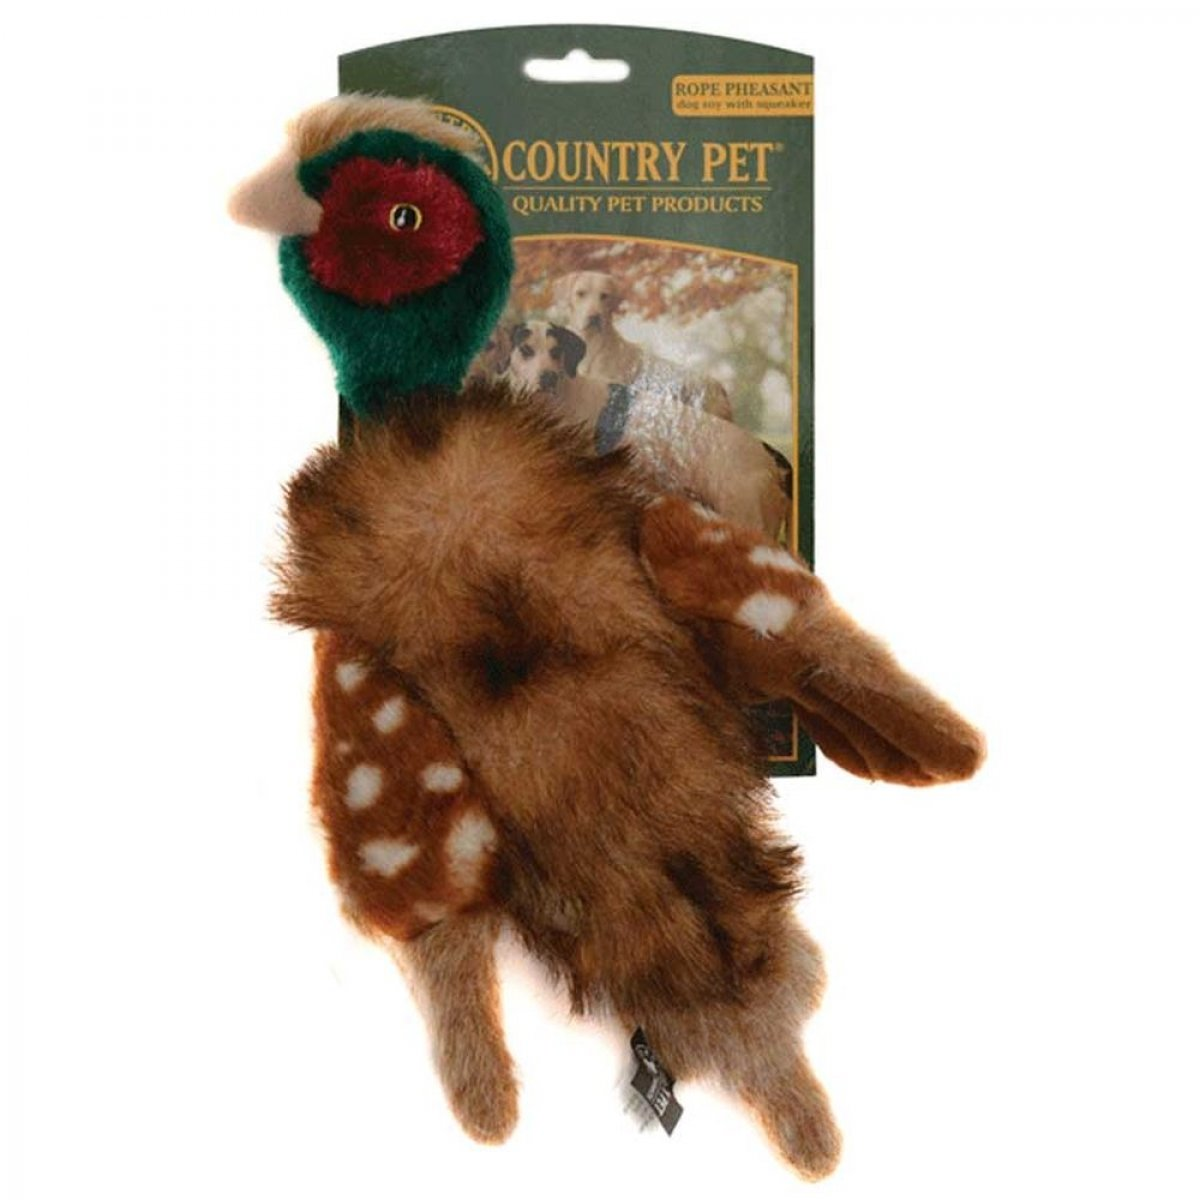 Country Pet Dog Toy Rope Pheasant with Squeaker, Large